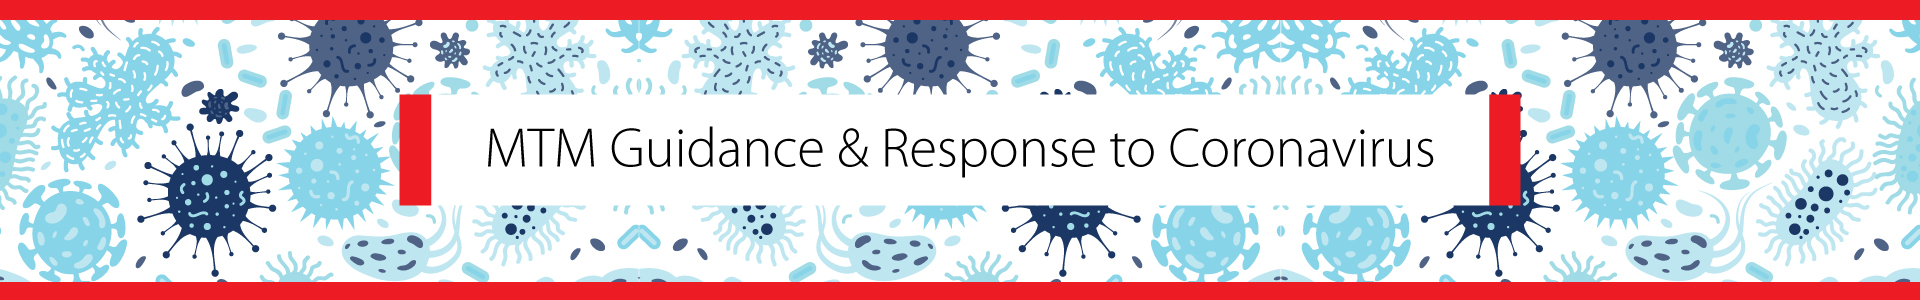 MTM Guidance and Response to the Coronavirus